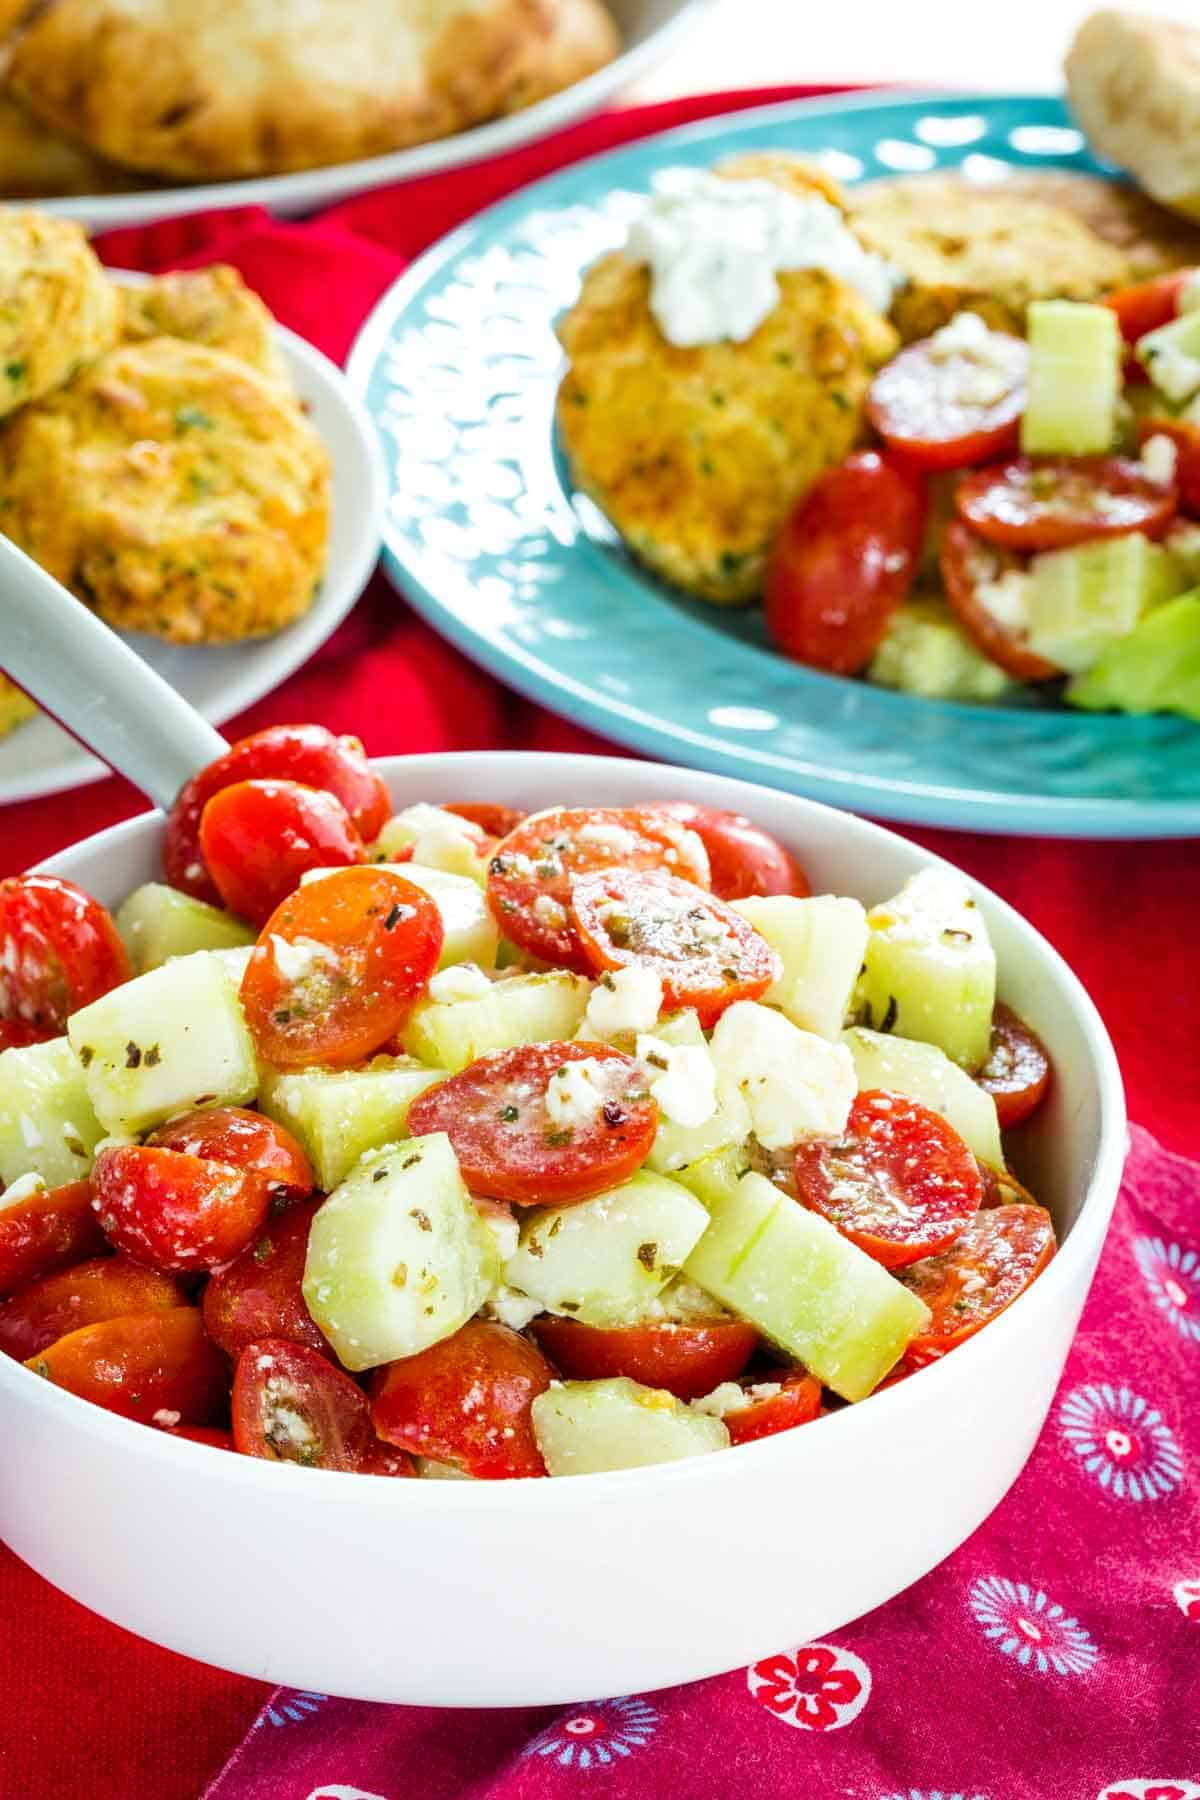 Cucumber Tomato Salad with Feta as part of a Mediterranean meal